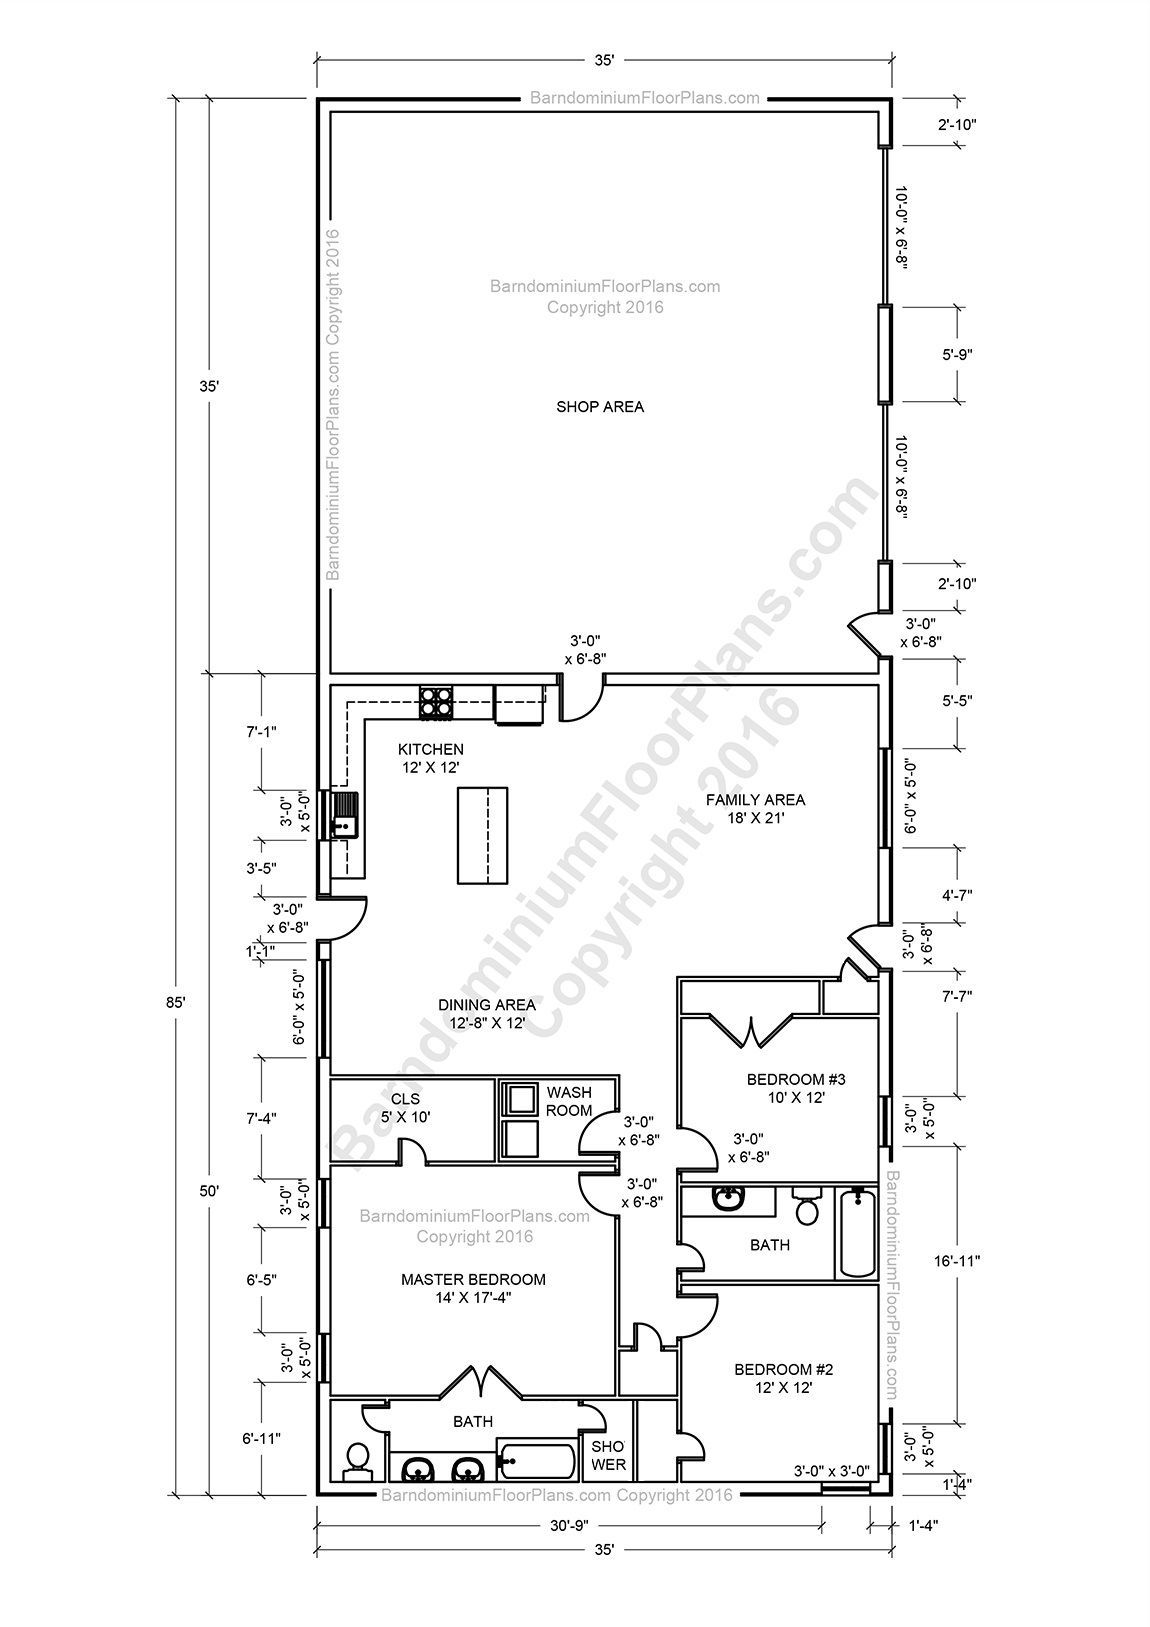 Barndominium Floor Plans 2 Story 4 Bedroom With Shop Barndominium Floor Plans Cost Open Concept Barndominium Floor Plans Metal Shop Houses Shop House Plans